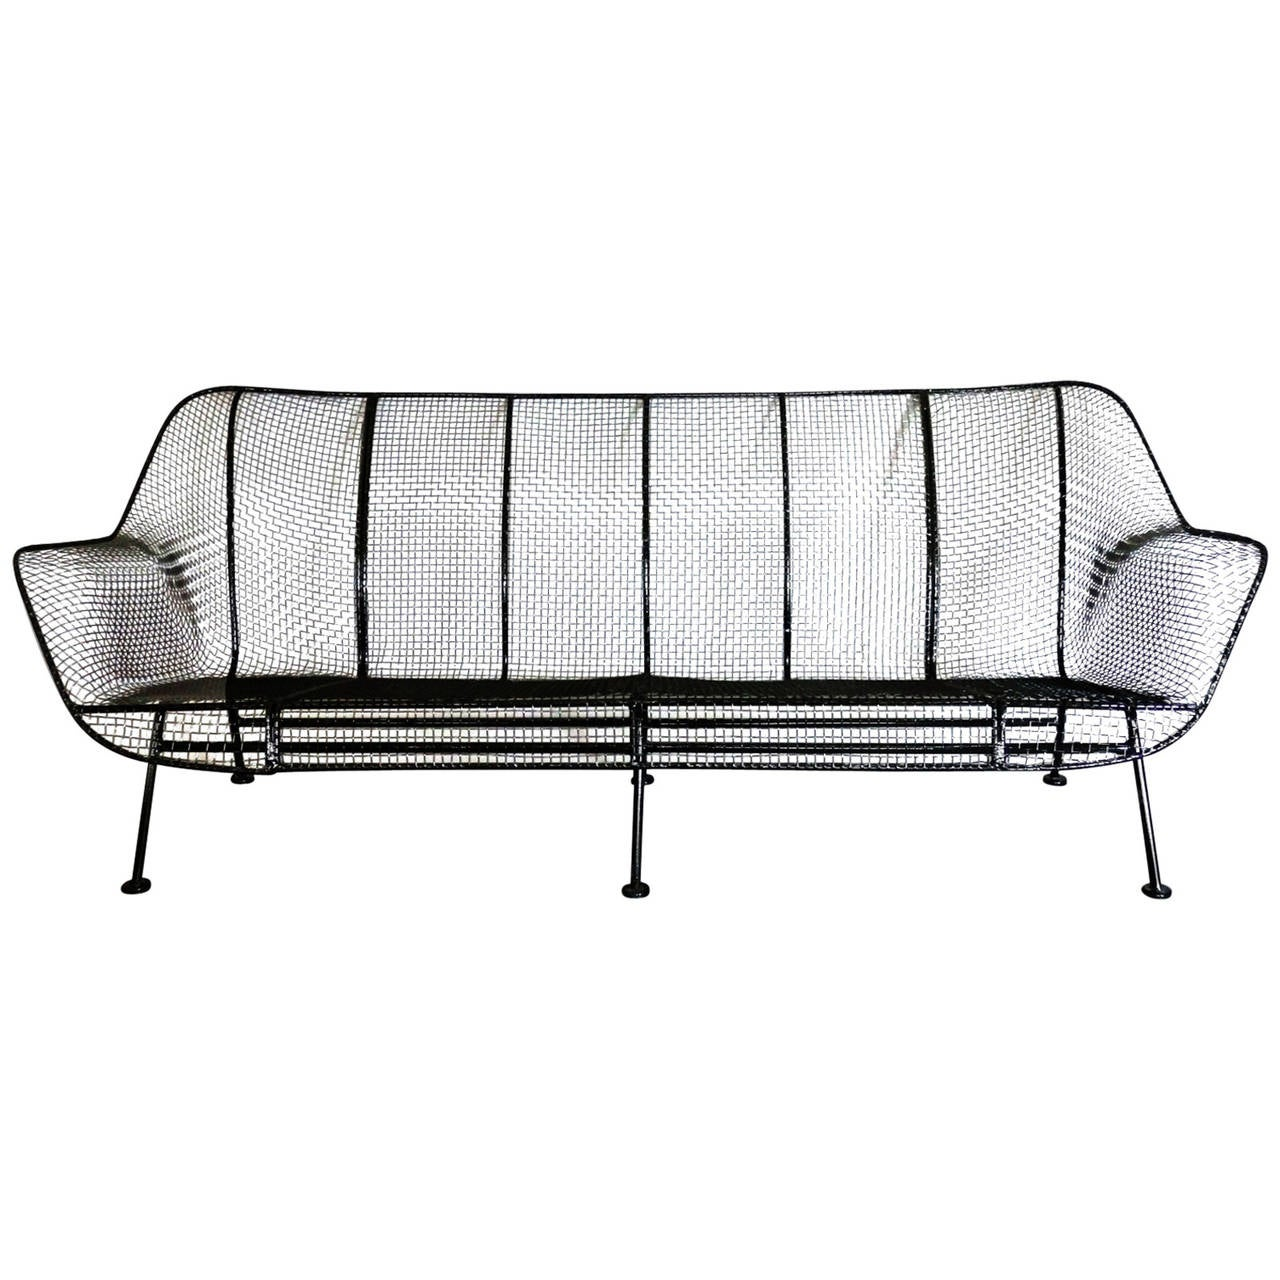 Woodard Wrought Iron with Mesh Outdoor Garden Couch at 1stdibs